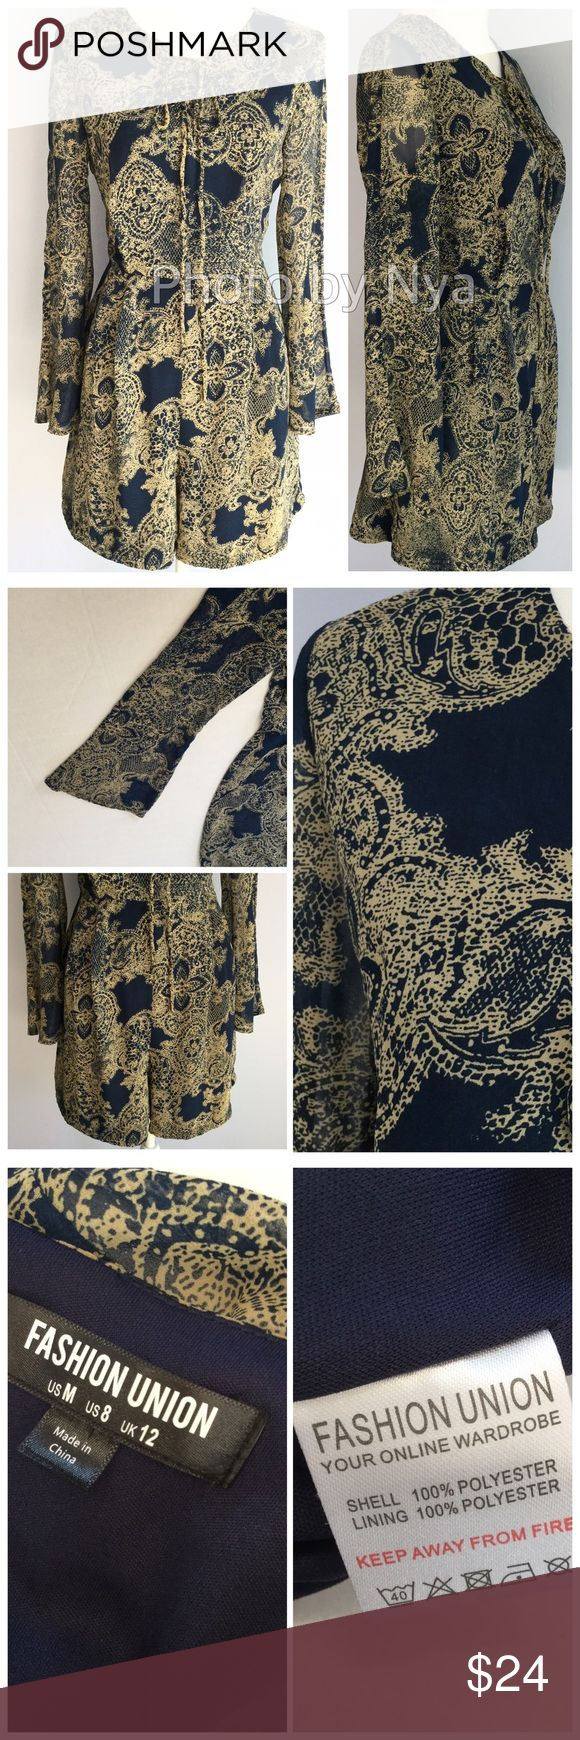 Romper ASOS Fashion Union Blue navy blue romper with detail pattern.  Front features lace up around chest area.  Long sleeves are wide at the end,  no flaws,  perfect condition. All measurements are in last photo. ASOS Dresses Long Sleeve